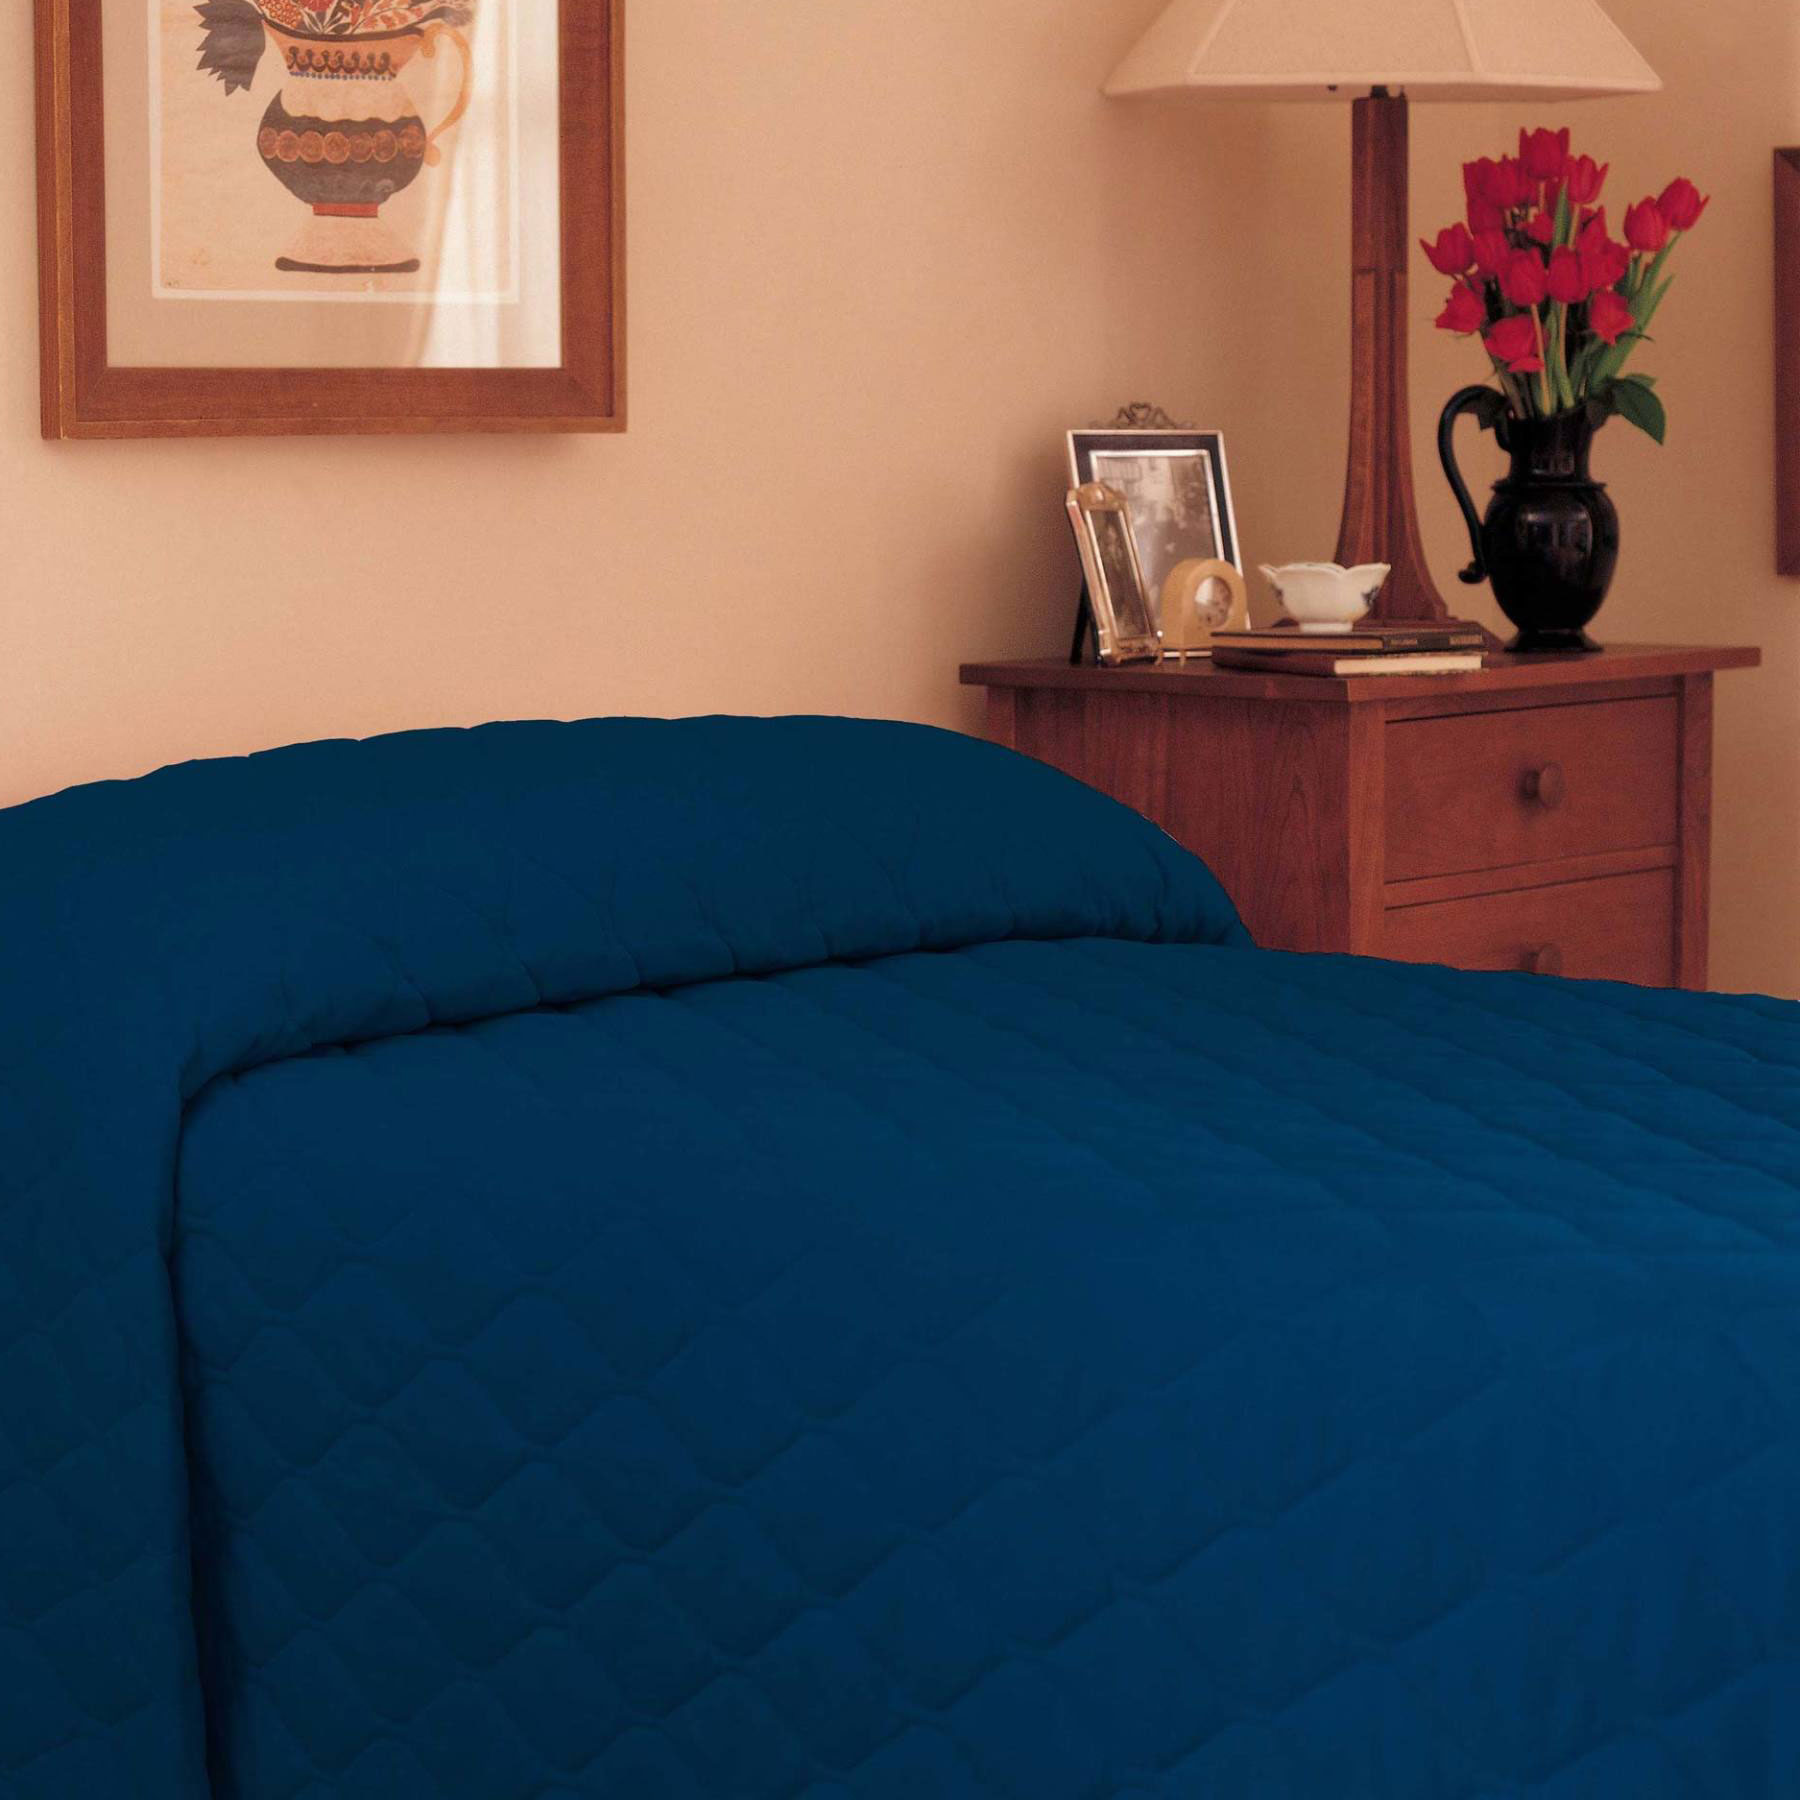 Martex Solid Color Bedspread Twin 81x110 Polyester Cotton